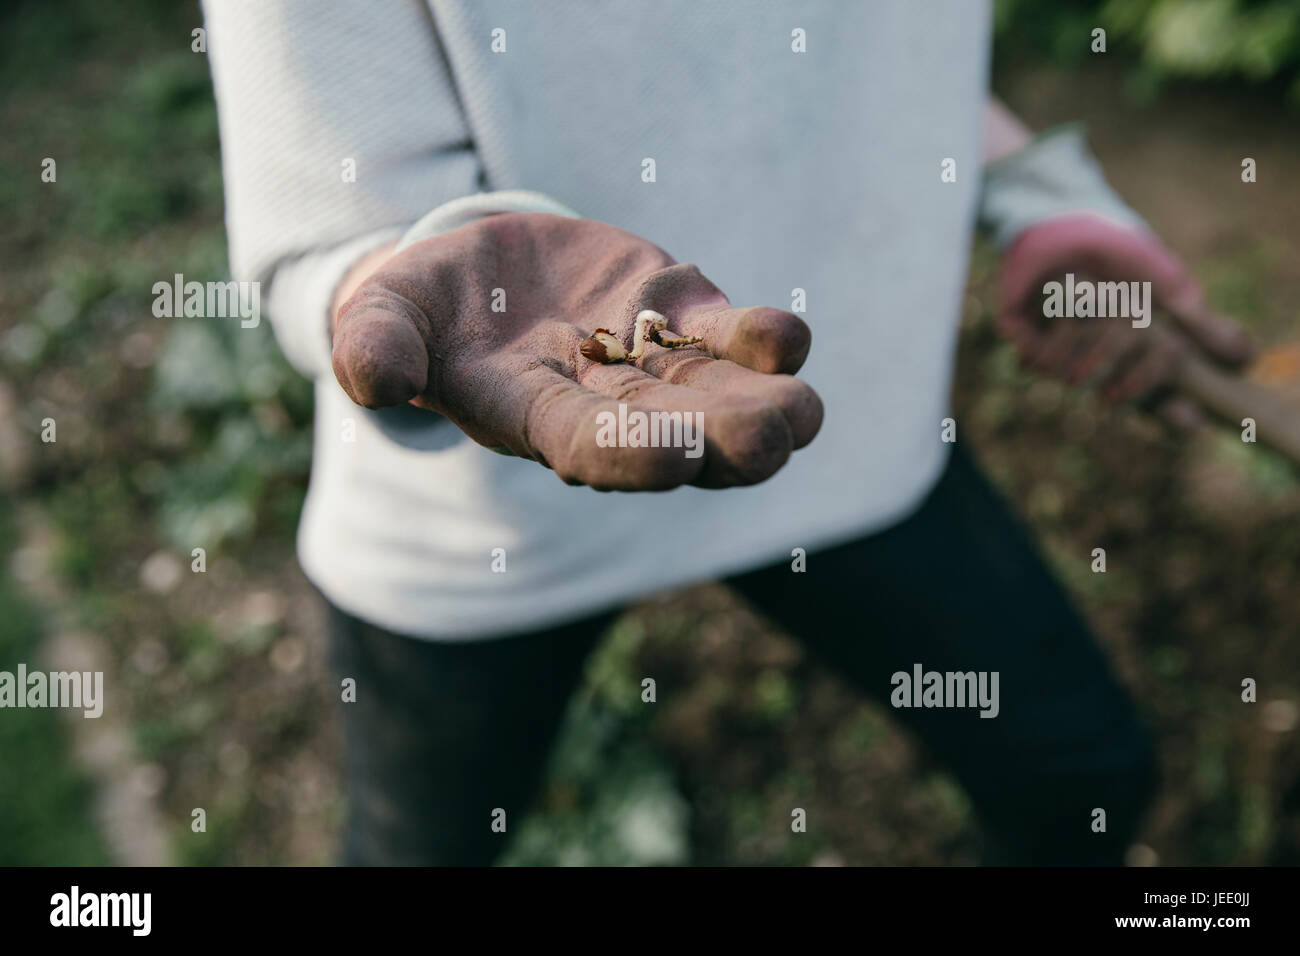 Hand of gardening woman holding a germ bud, close-up - Stock Image